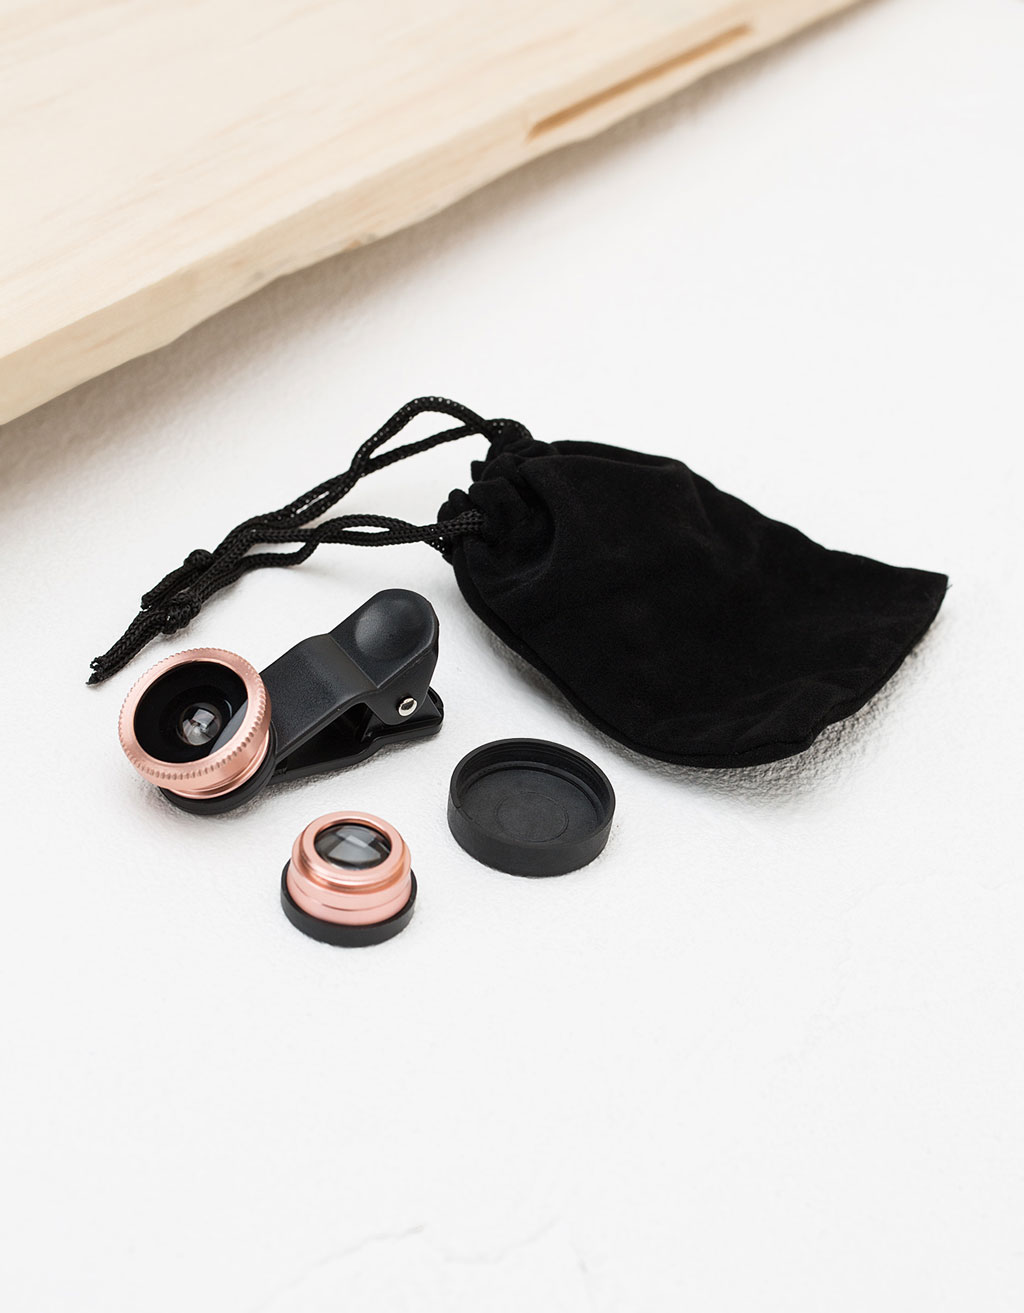 Rose Gold fish eye lens for smartphones